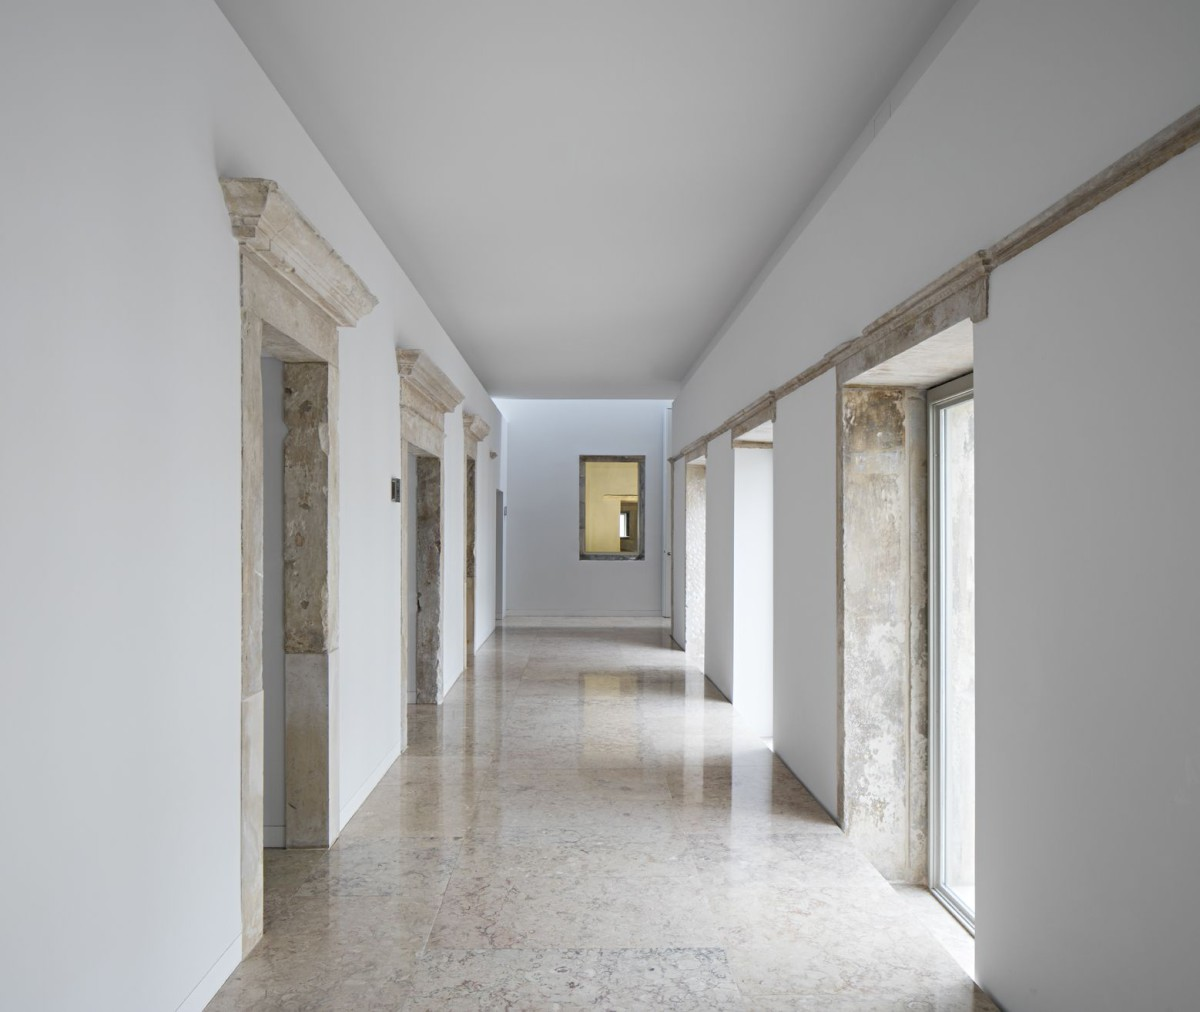 Aires Mateus . Renovation of the Trinity College - European College . Coimbra (19)